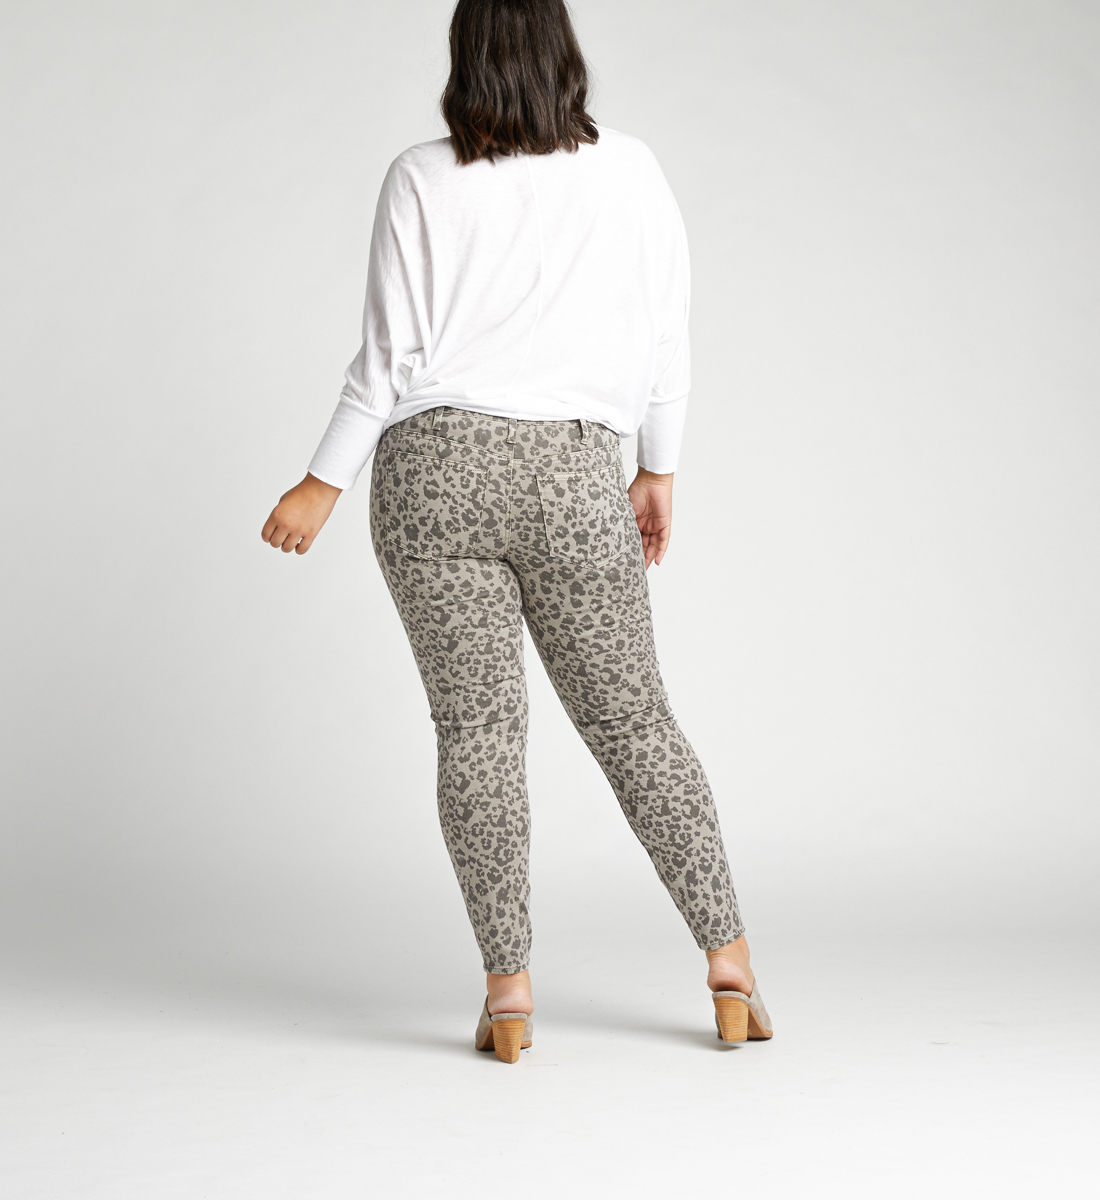 Most Wanted Mid Rise Skinny Plus Size Jeans,Grey Back